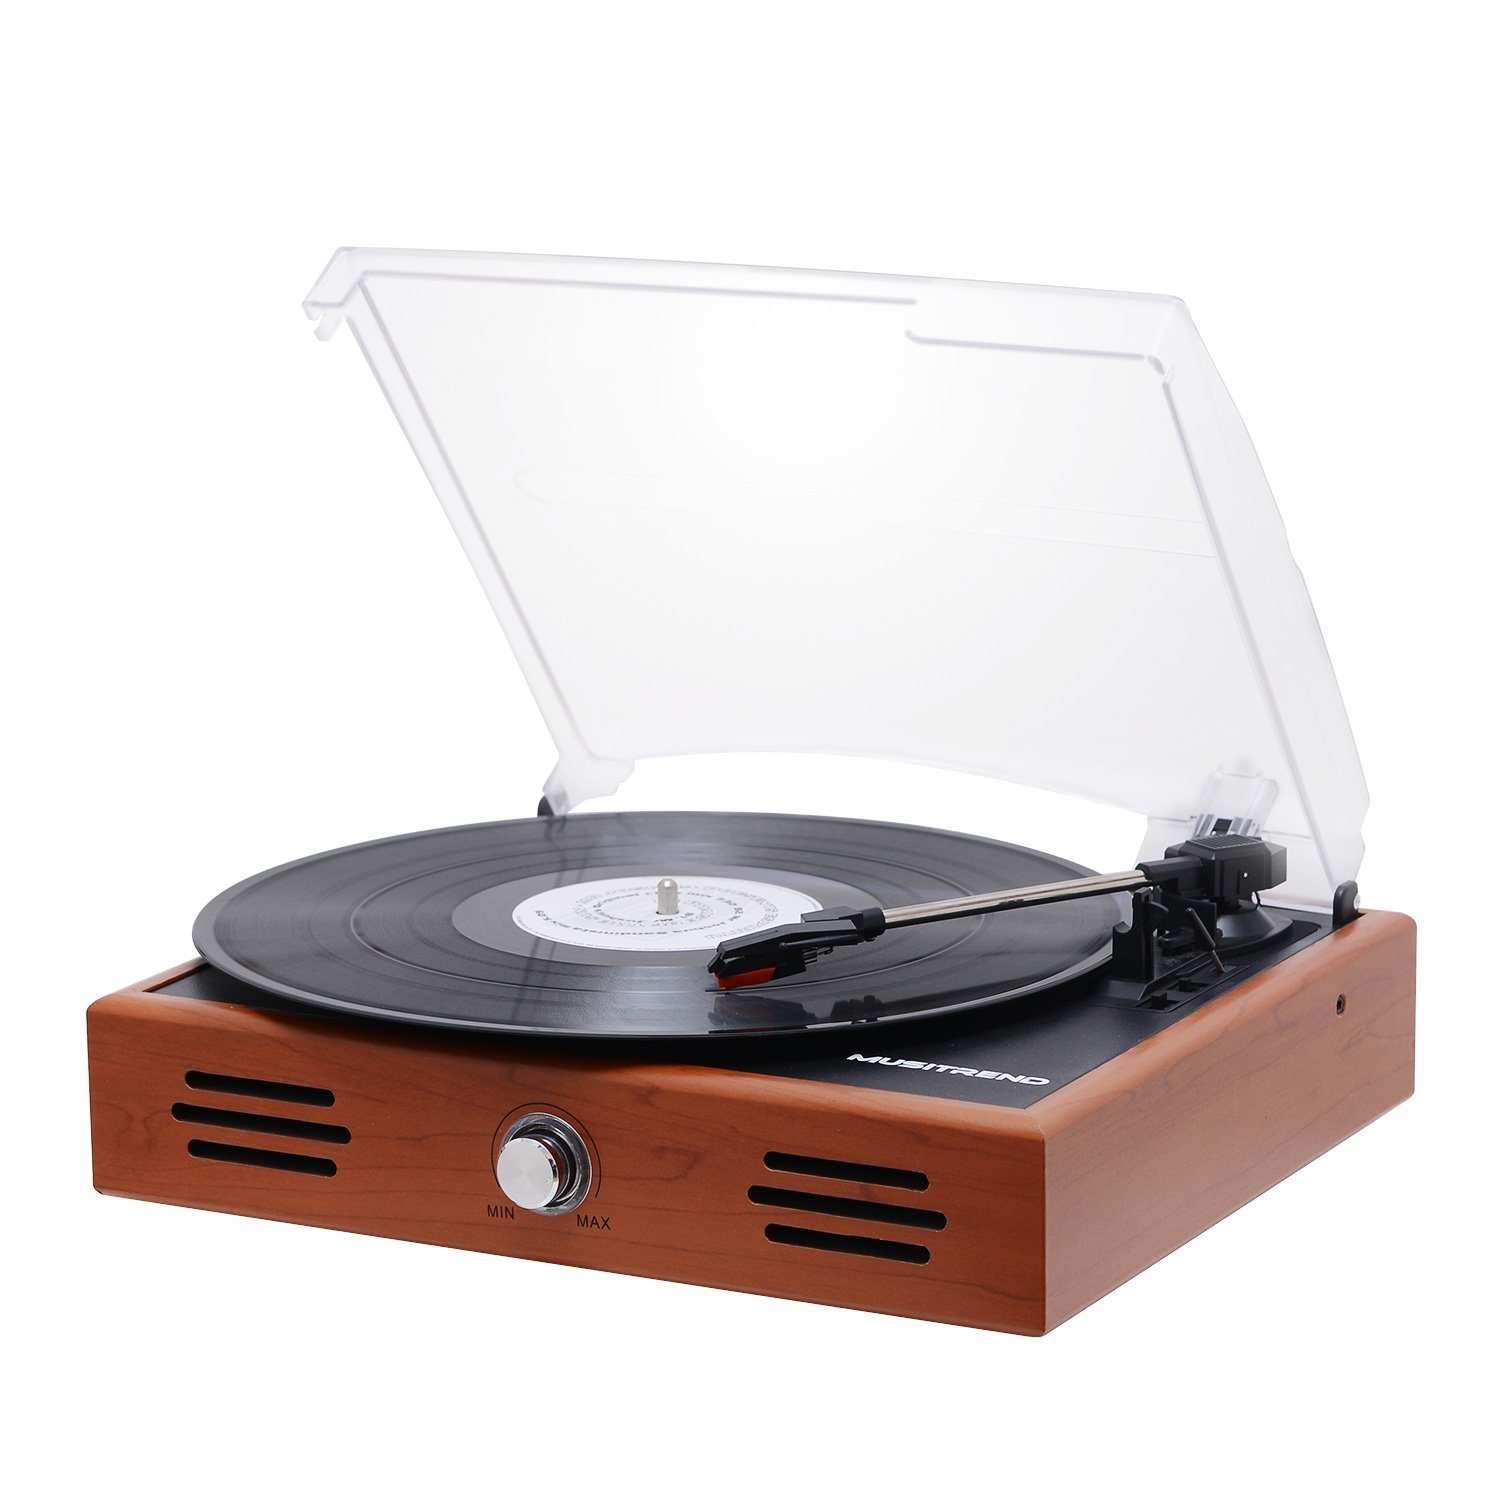 Turn Table record player amazon